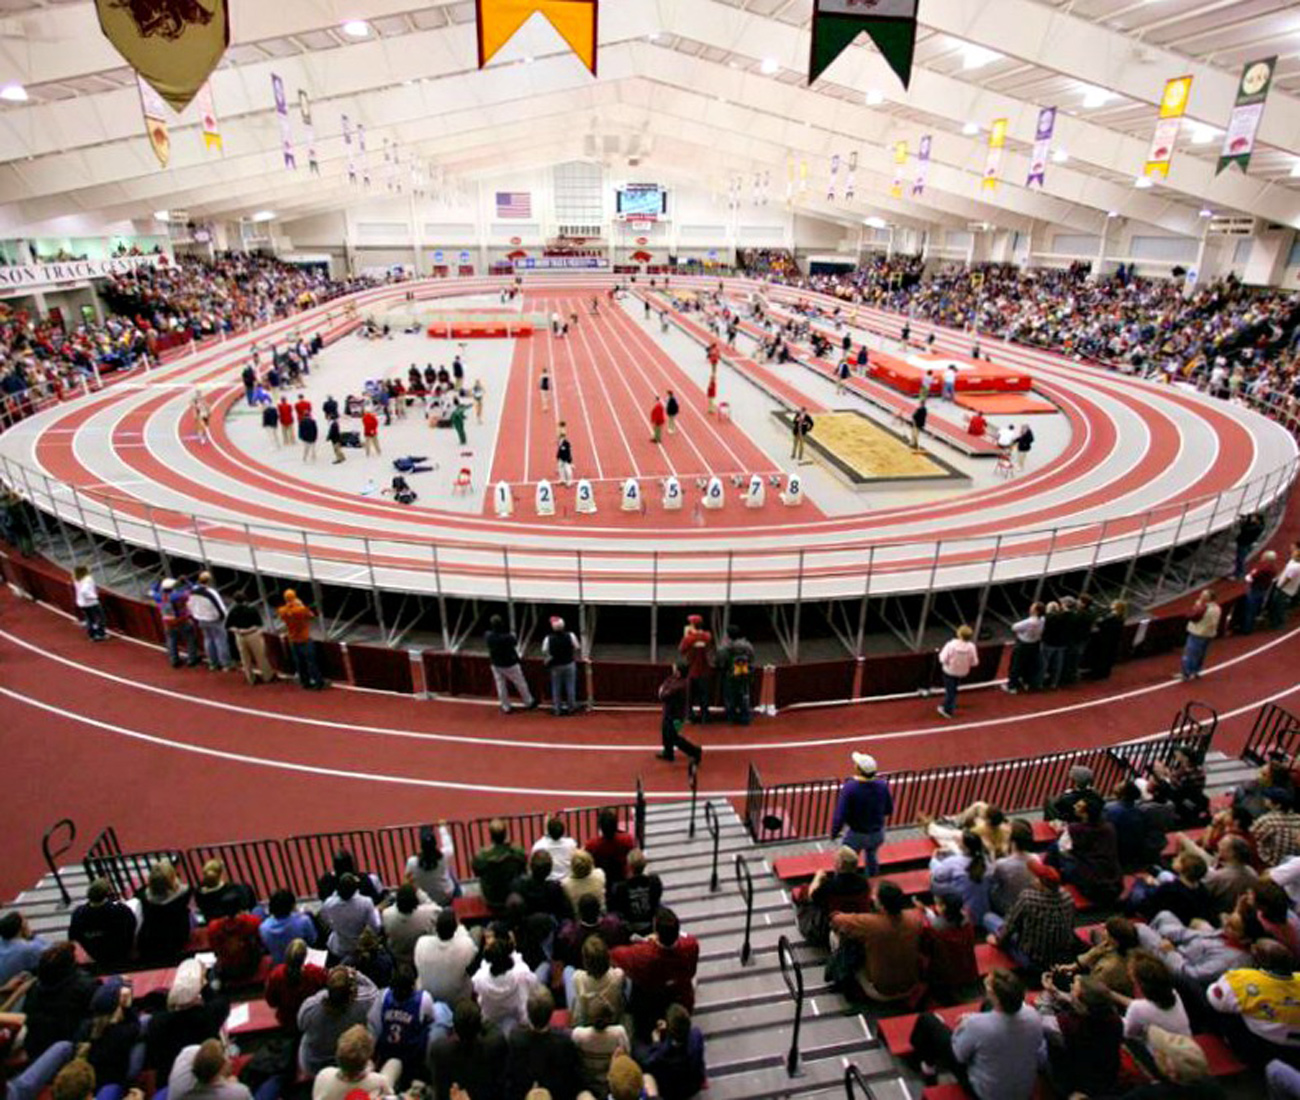 University of Arkansas Randal Tyson Indoor Track Facility